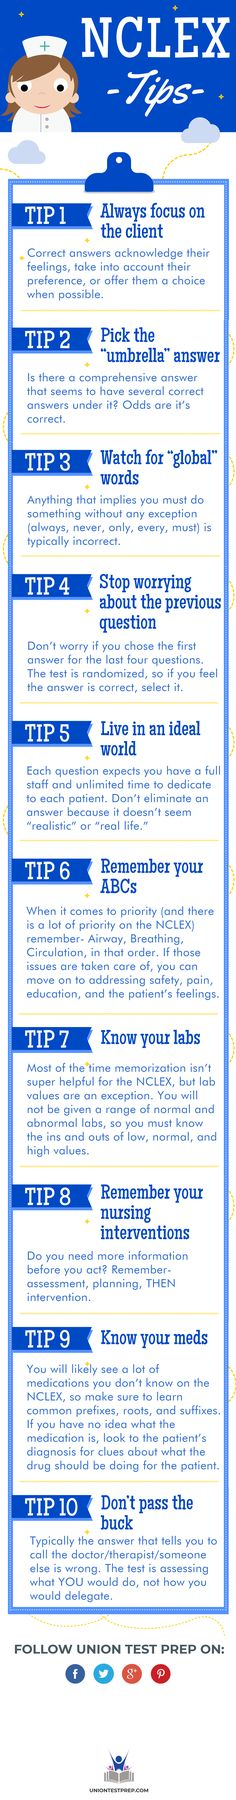 The NCLEX is intimidating, but you can pass it on the first try! Here are 10 tips that will help you successfully conquer the NCLEX-RN. Nursing Student Tips, College Nursing, Nursing Tips, Nursing Notes, Nursing Students, Nursing Board, Rn Nurse, Nurse Life, Nurse Humor